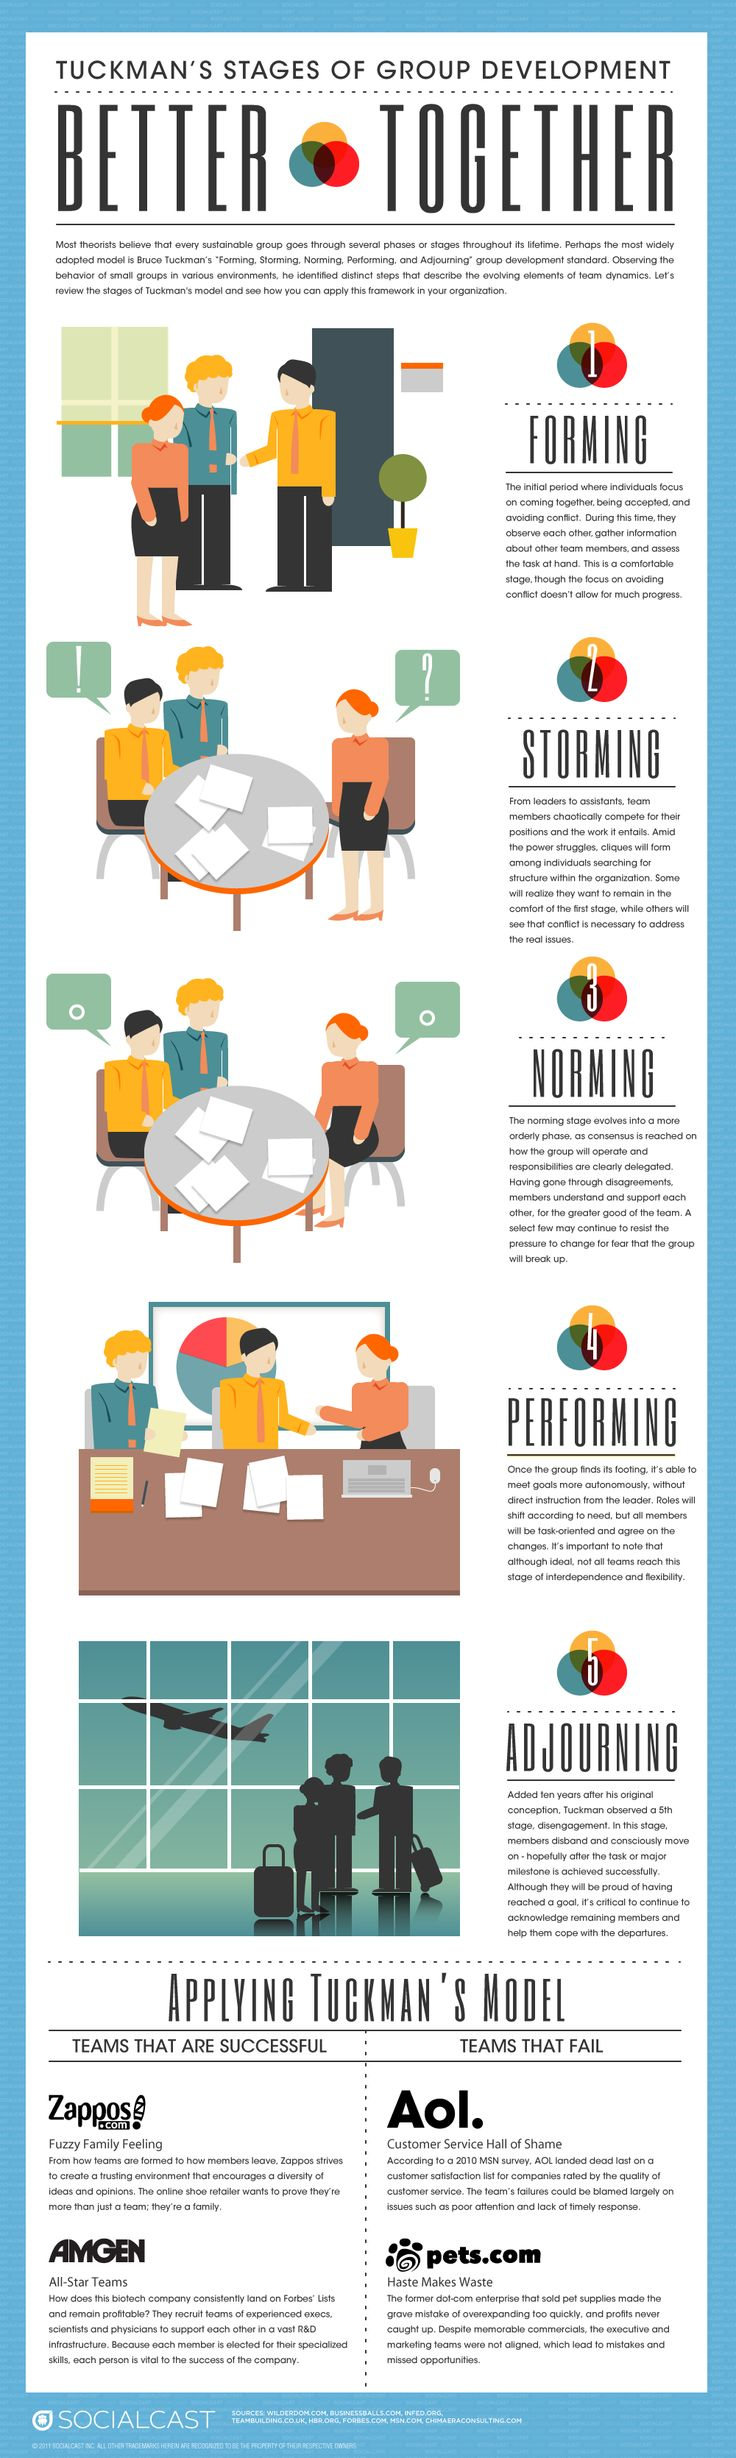 teams and team processes group dynamics Group dynamics and teamwork  members are aware of the group's processes and their own  virtual team a group of individuals working on tasks from a dispersed.